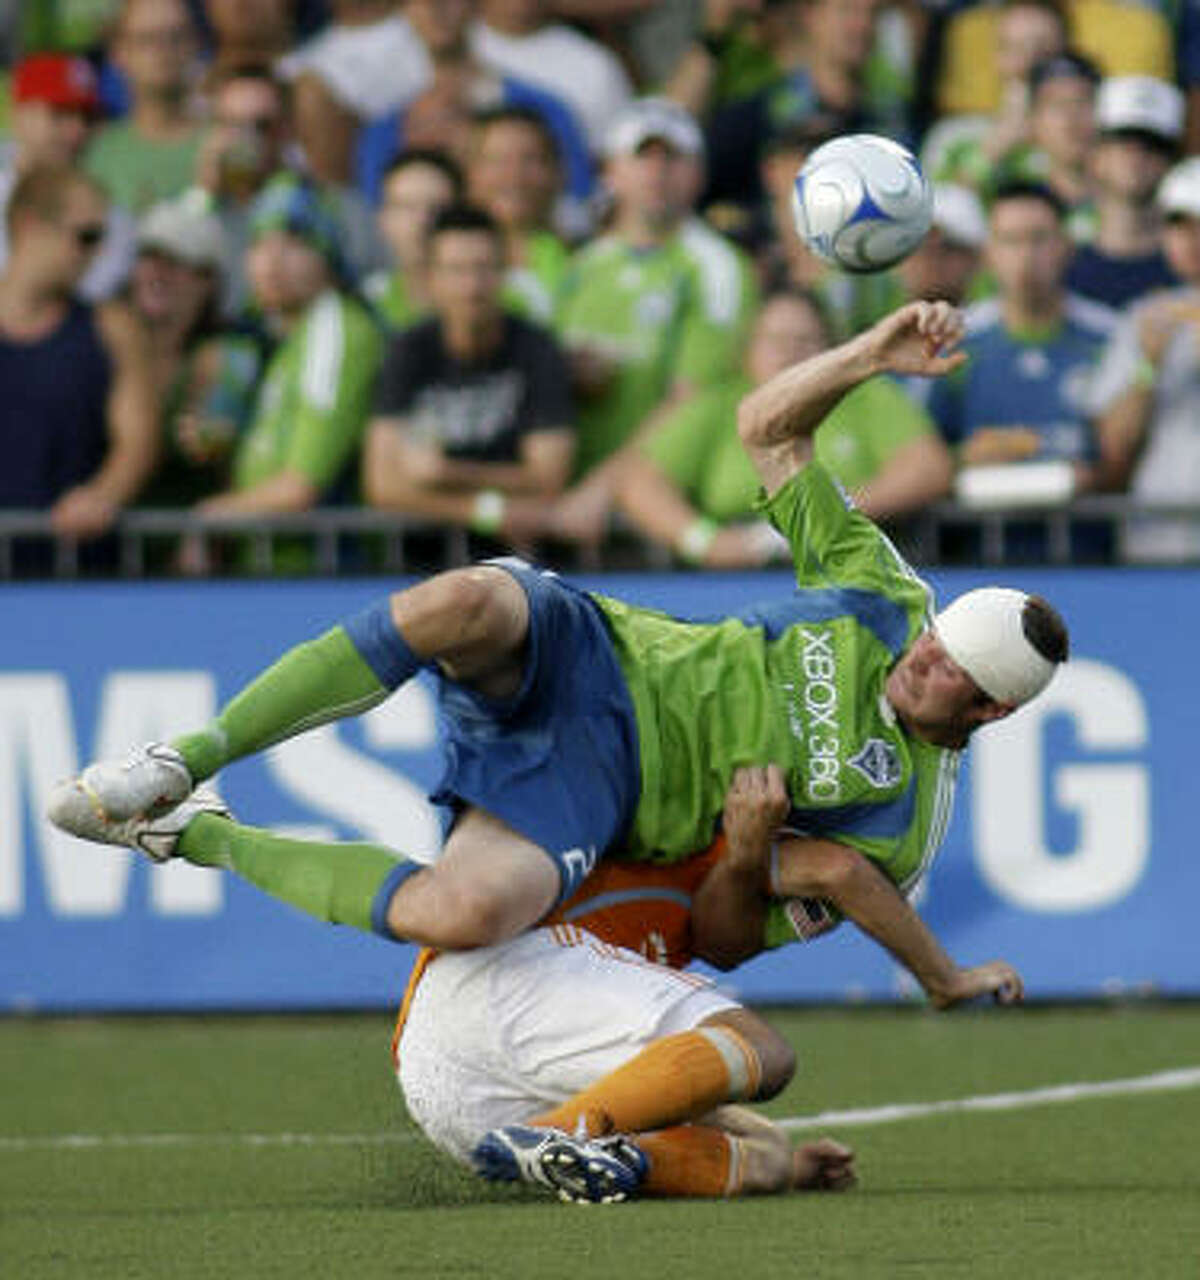 Seattle Sounders' Nate Jaqua comes down on top of Houston Dynamo's Mike Chabala in the second half.